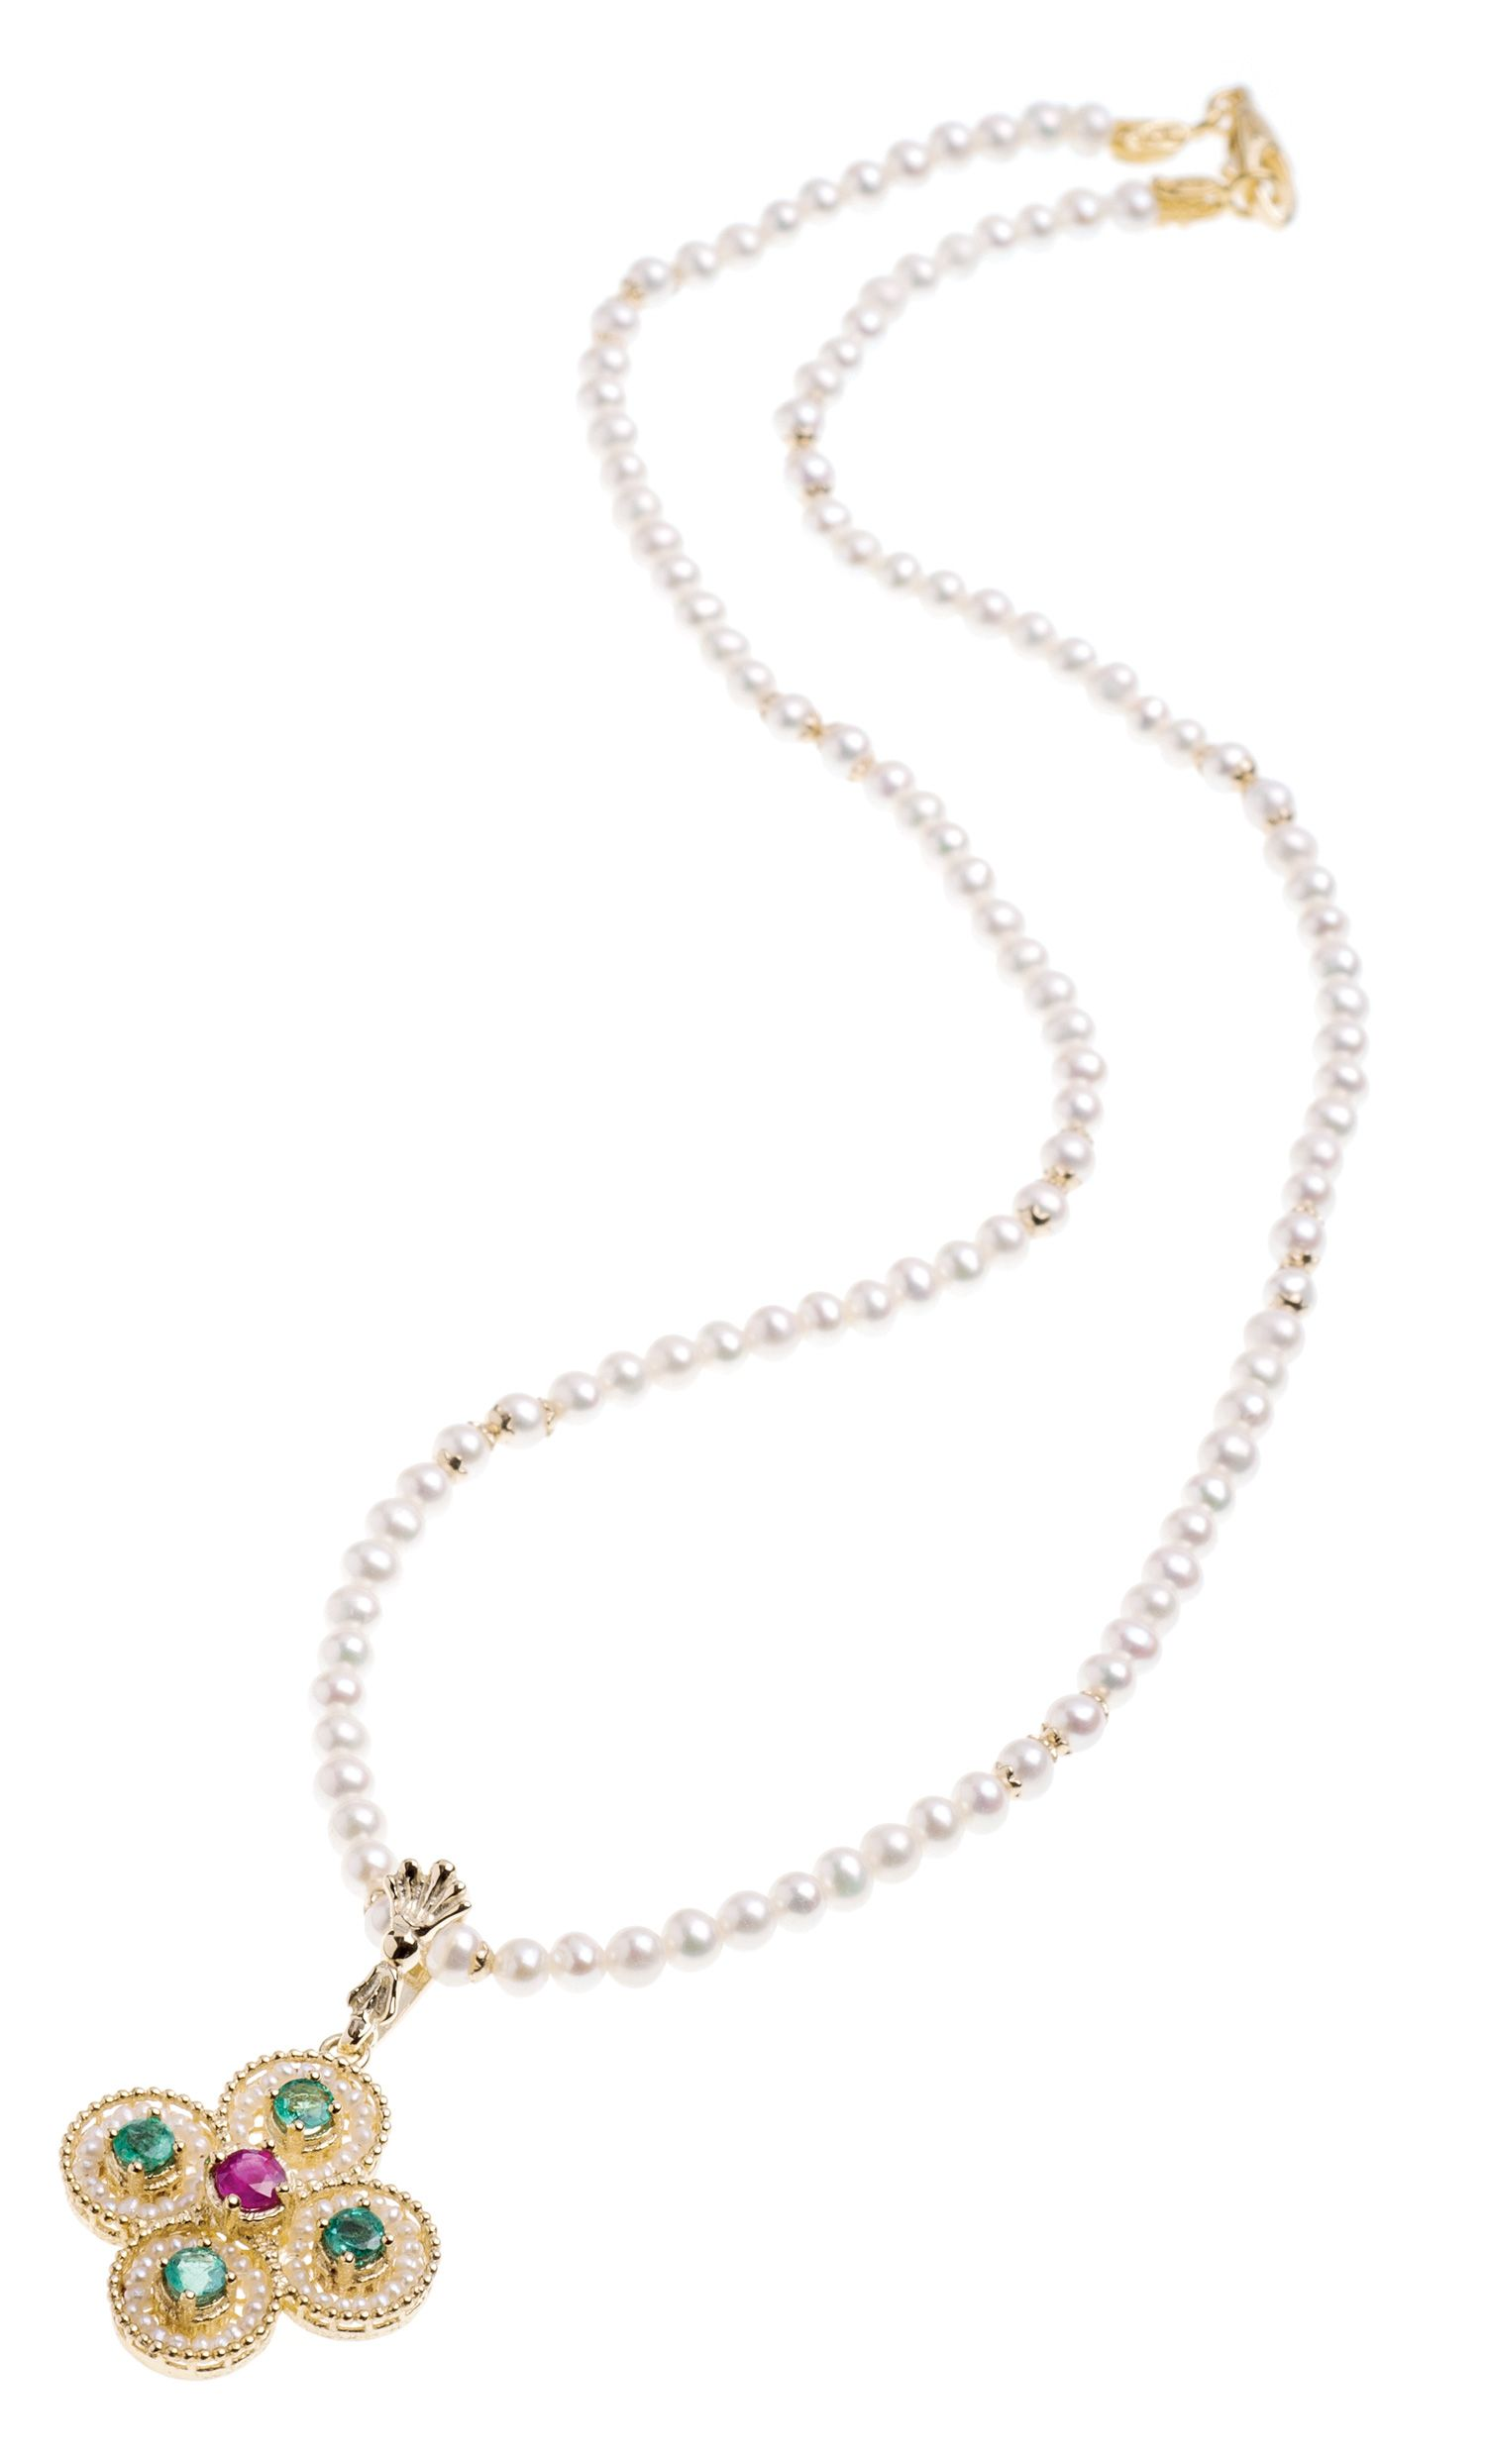 Pearl Necklace with Gold centre, Pearls and precious Stones (14246)